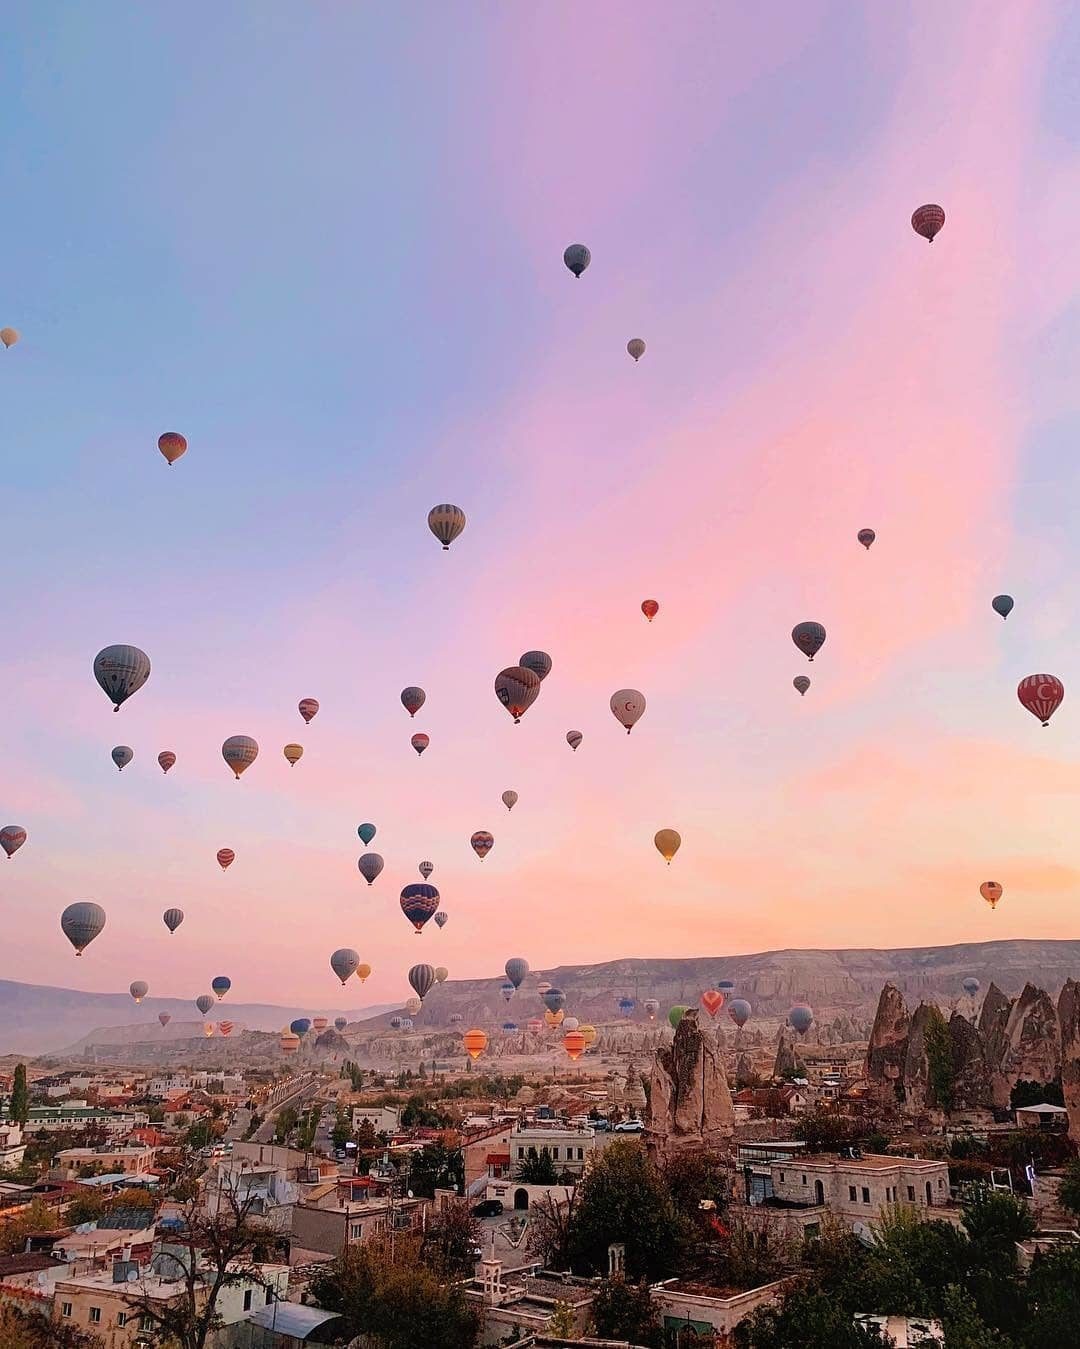 Rocky Views Hot Air Balloons Makes Cappadocia One